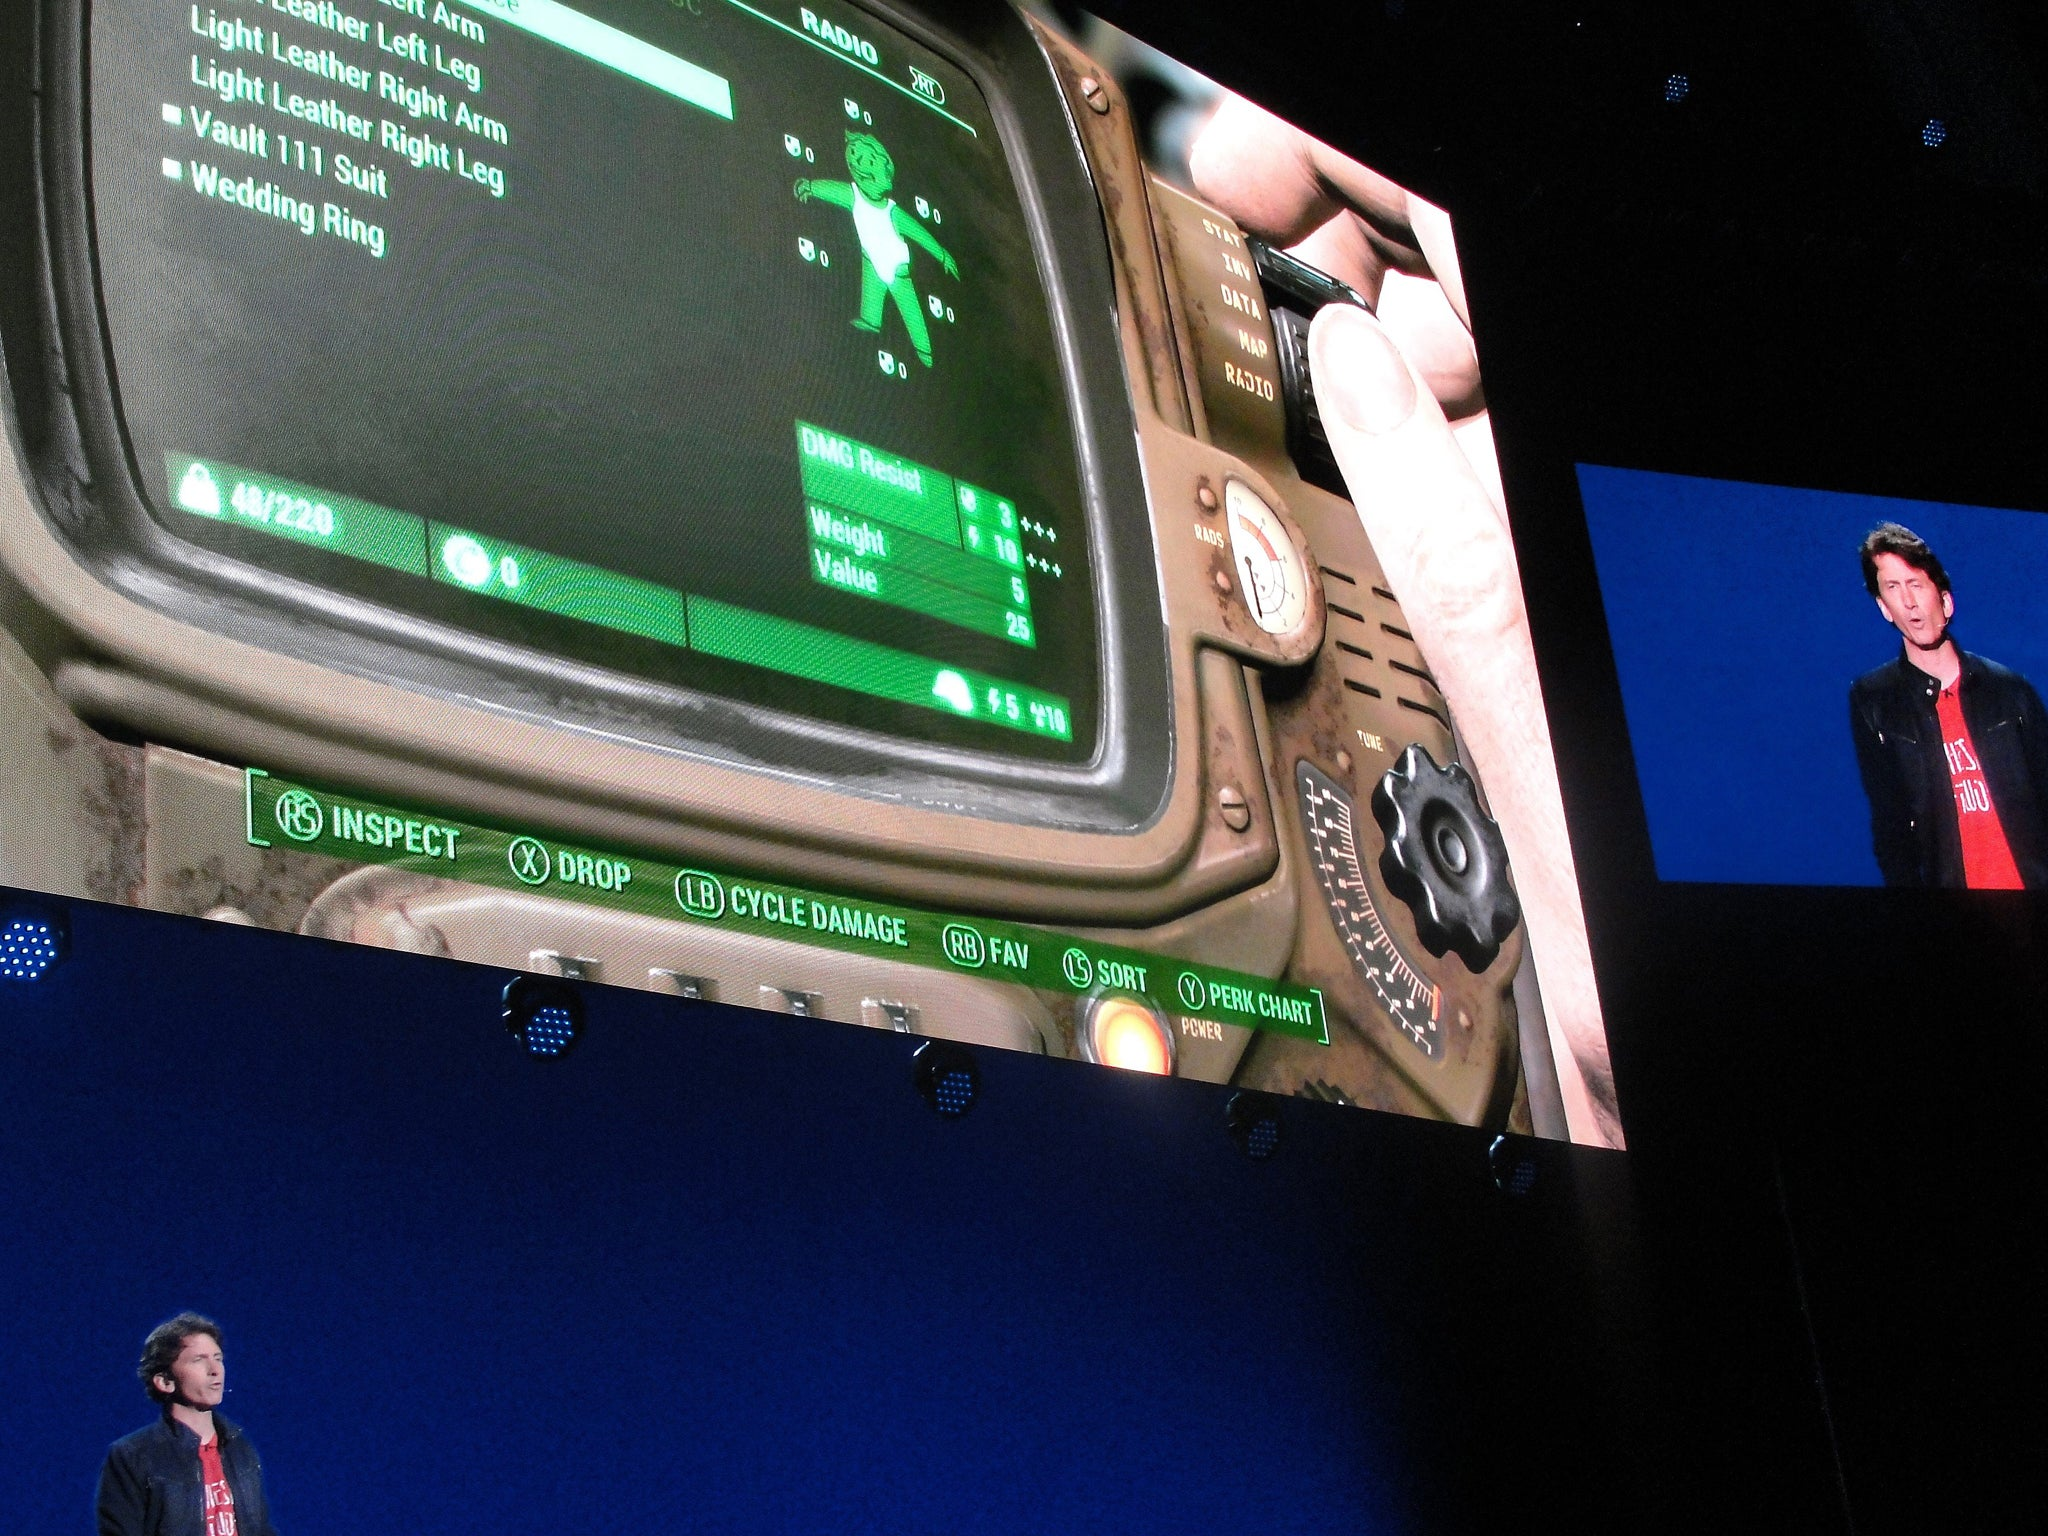 Fallout 4 announced by Bethesda at E3 2015, release date and